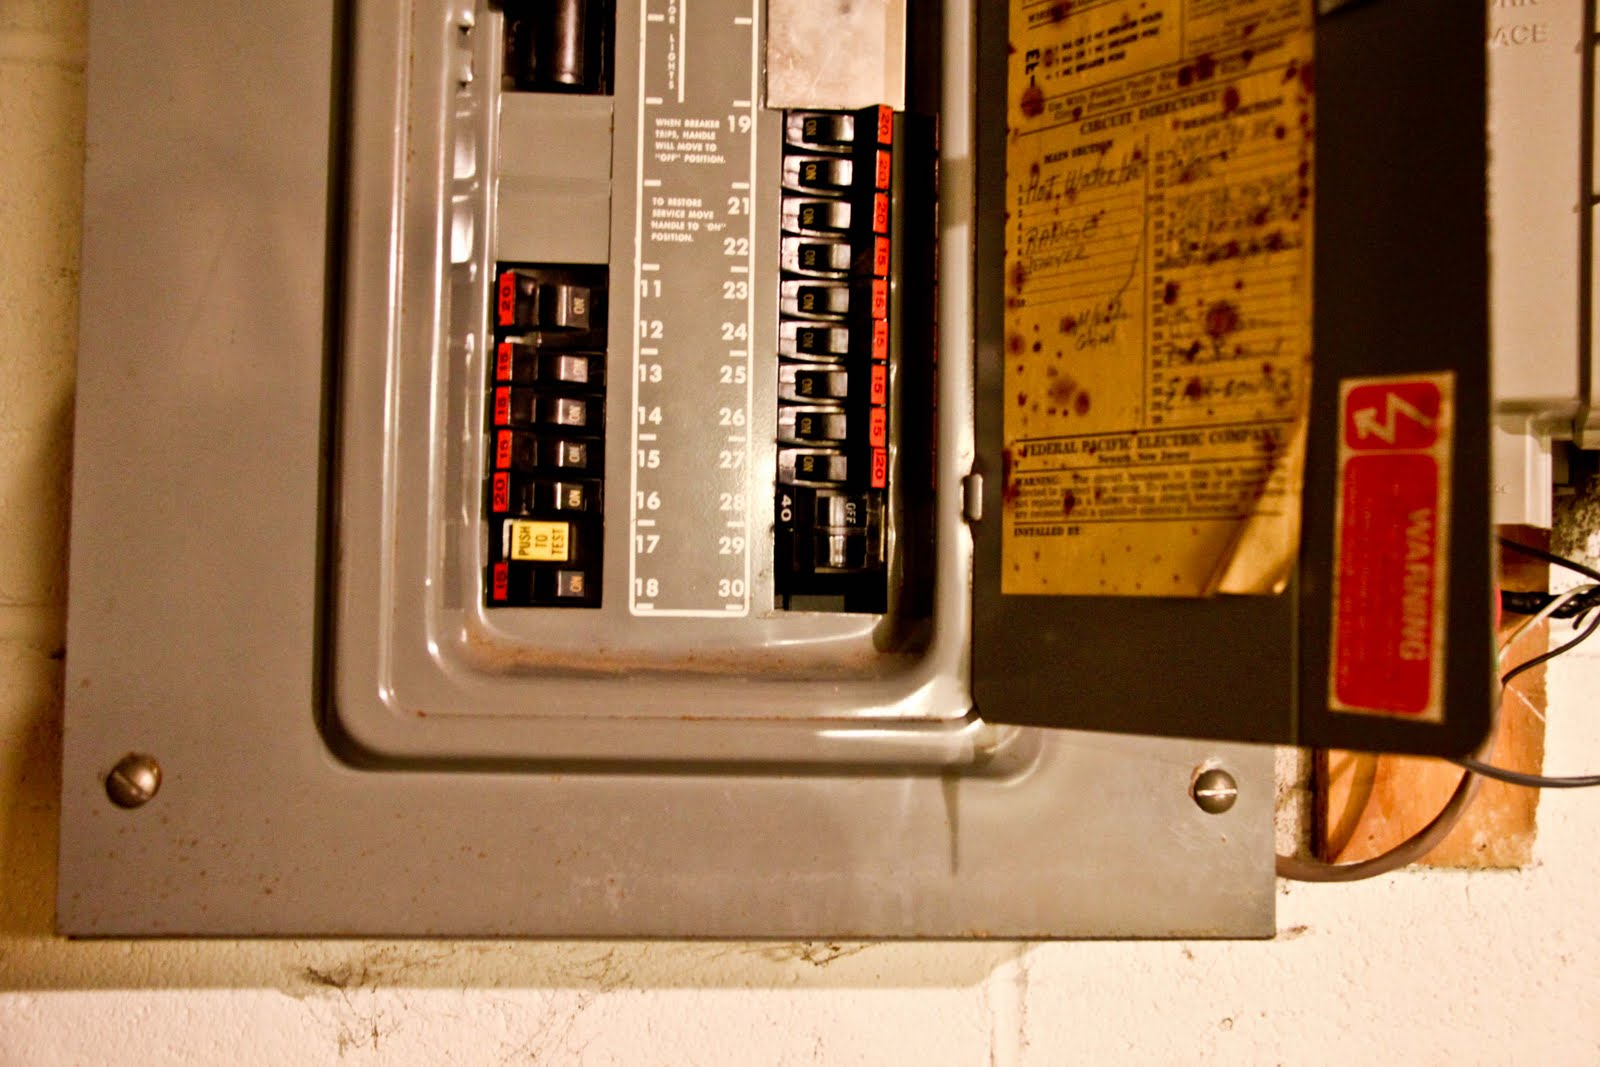 IMG_4614 replacing fuse on central ac unit work space how to change a fuse in a modern fuse box at alyssarenee.co